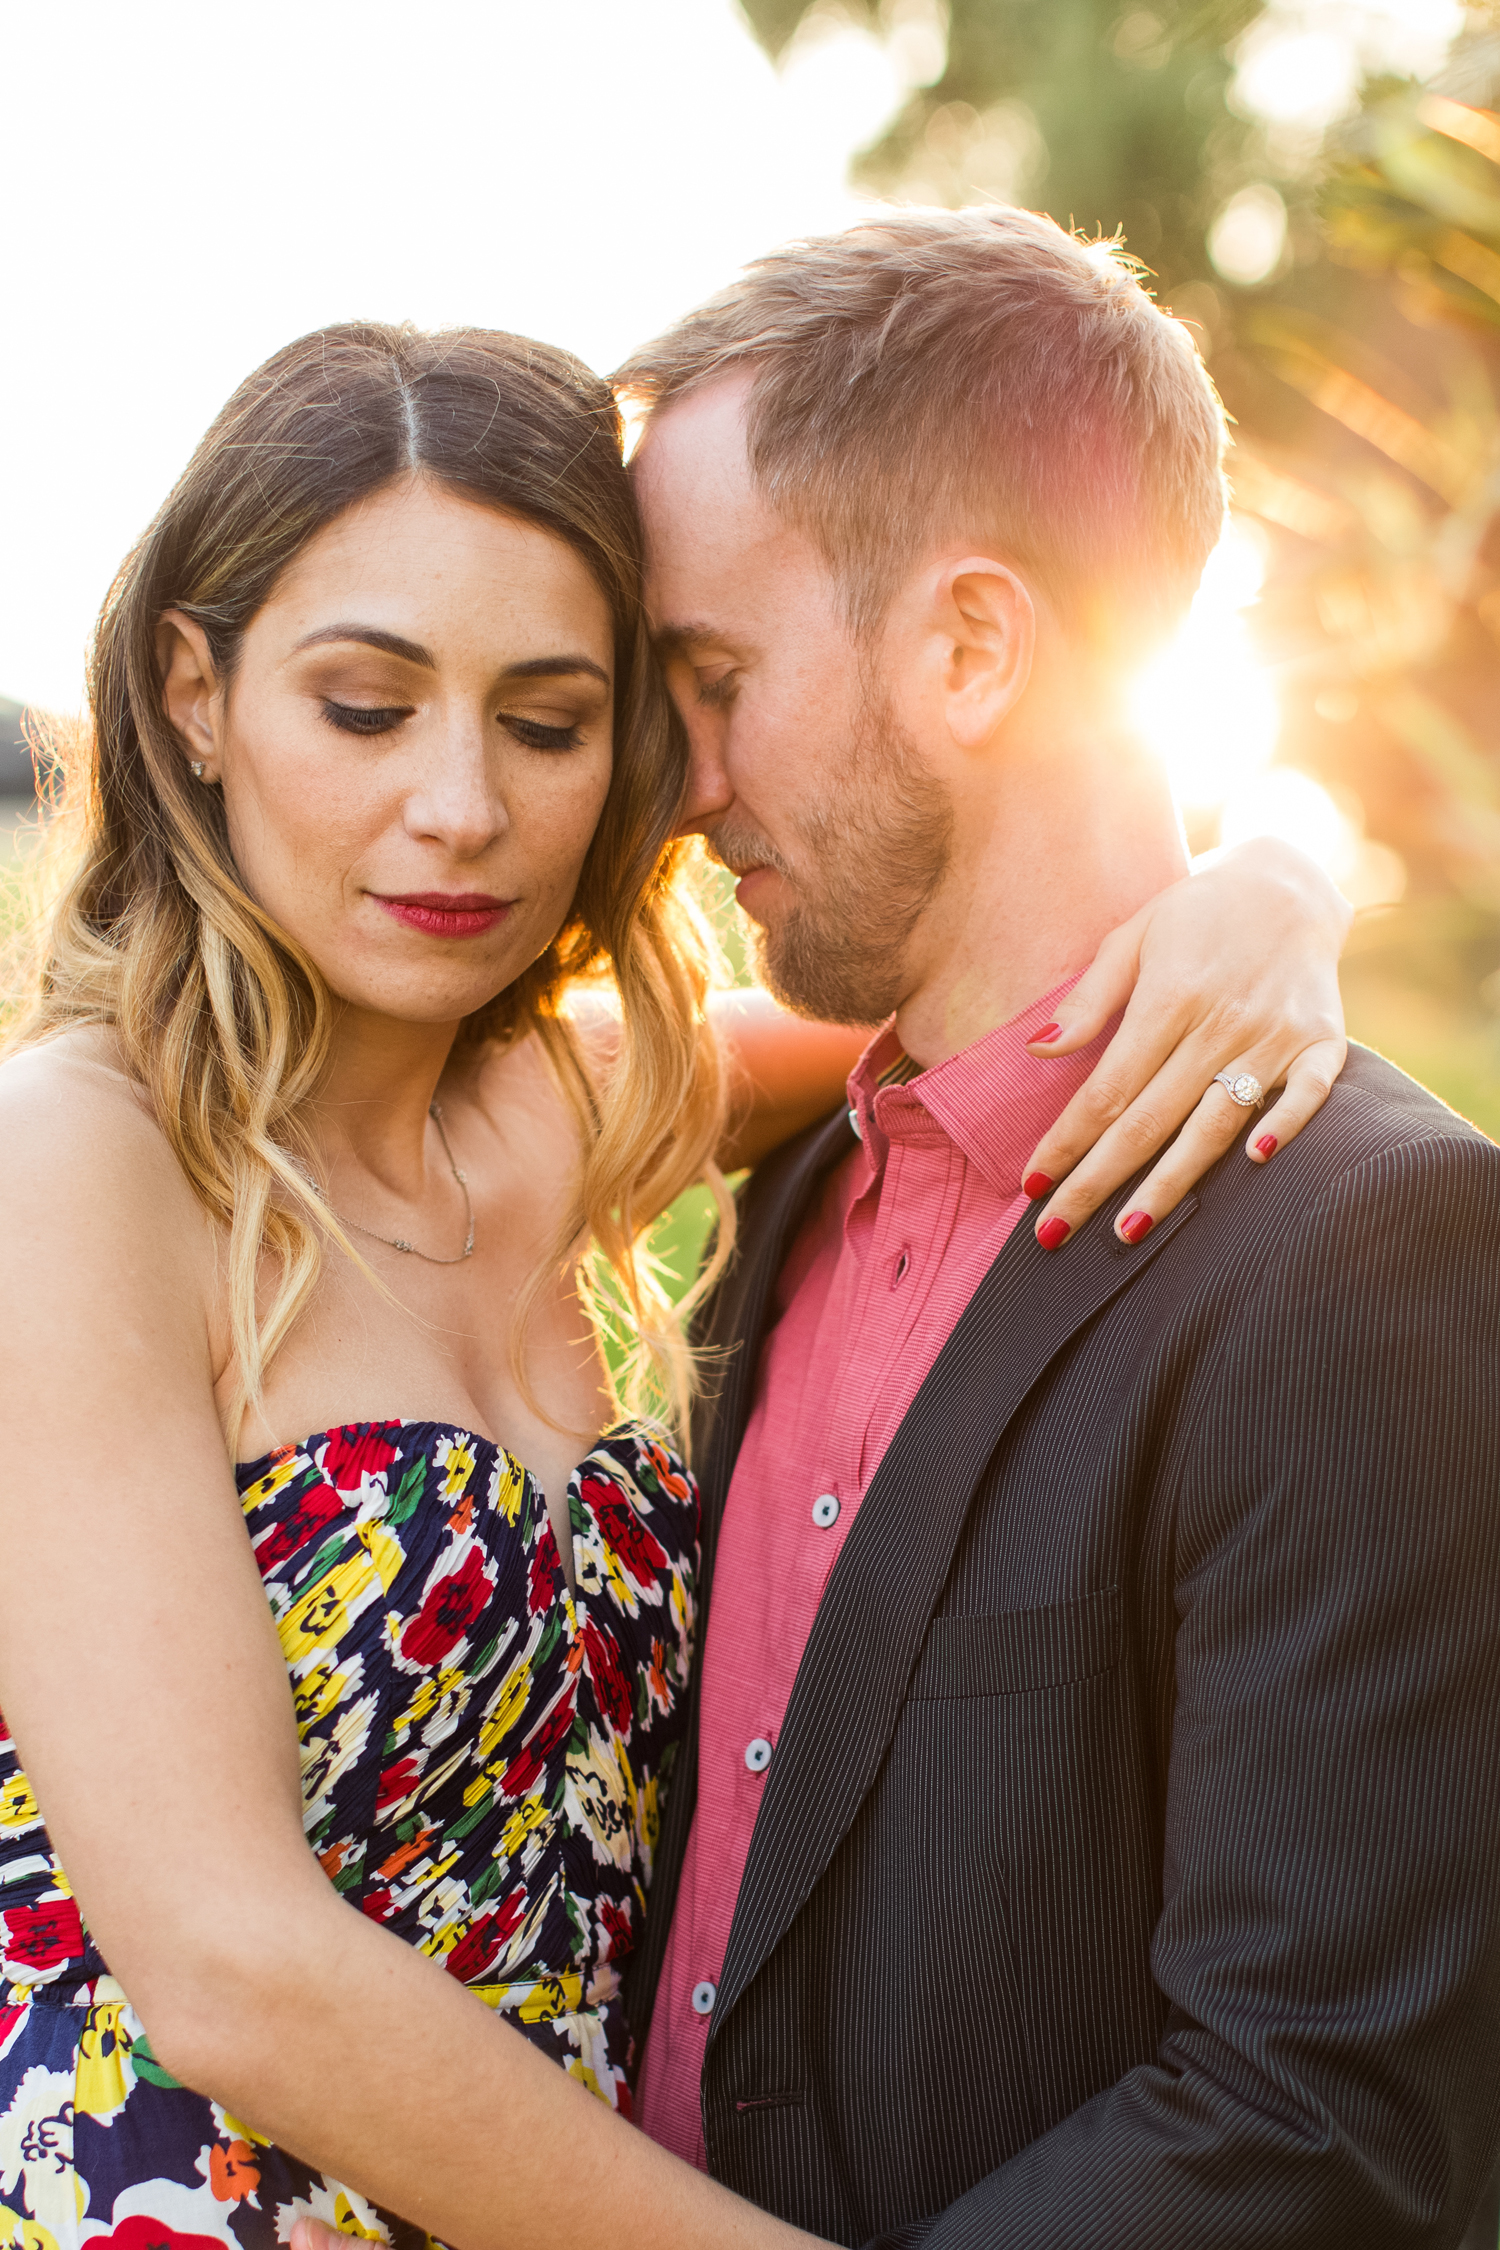 barnsdall-park-engagement-photography008.jpg